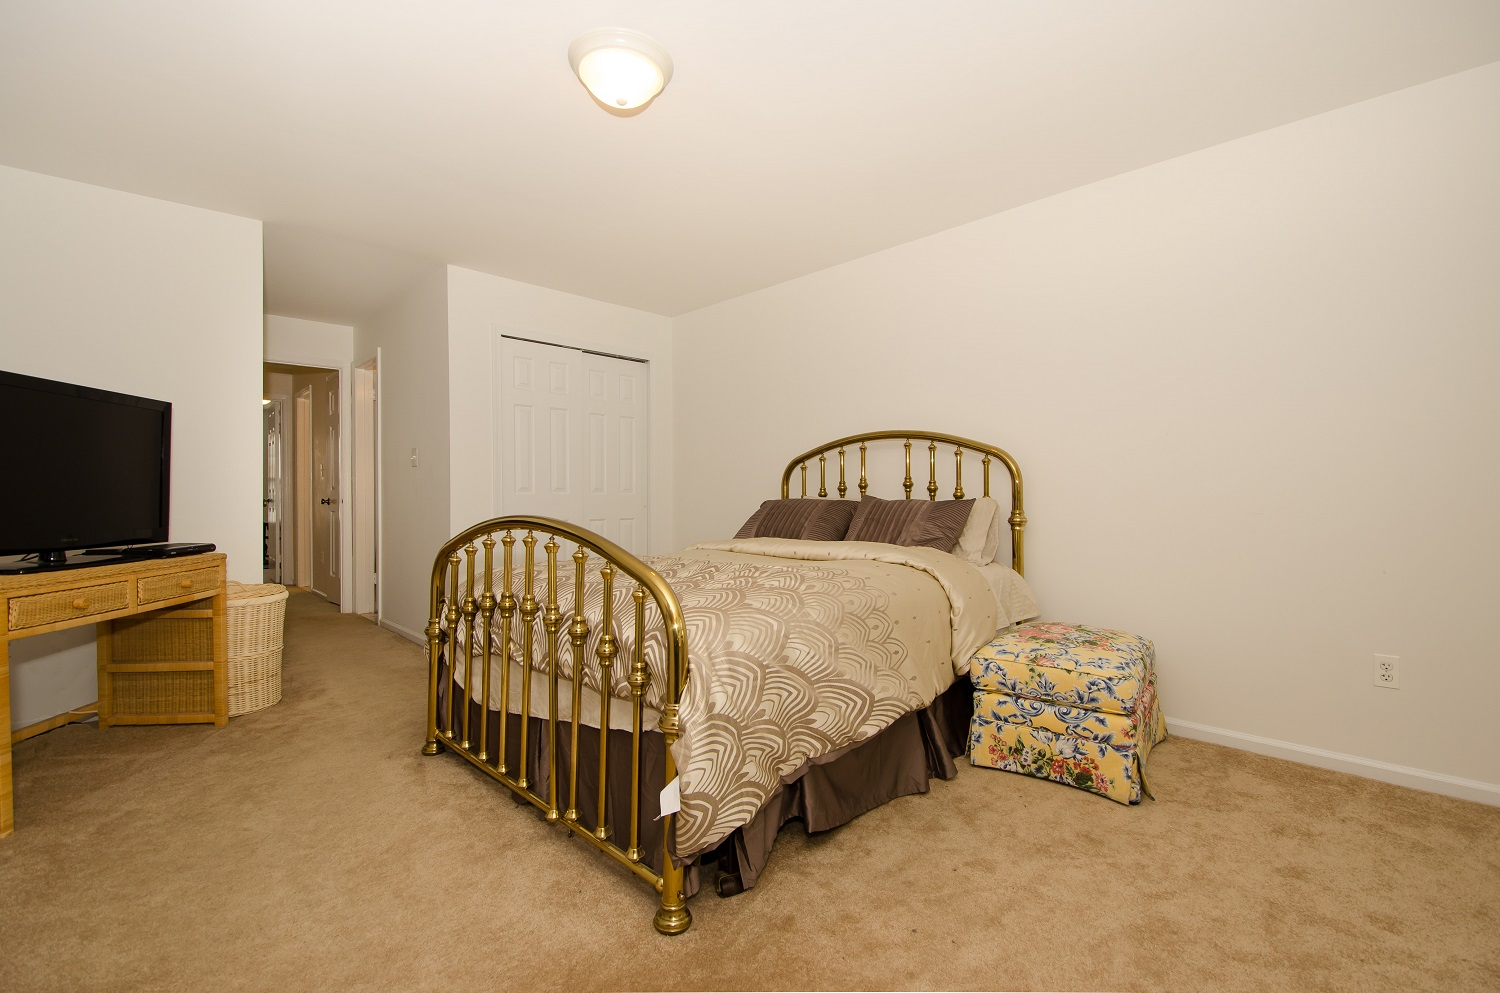 556 Cedar Hollow Dr., Yardley, PA 19067 Master Bedroom